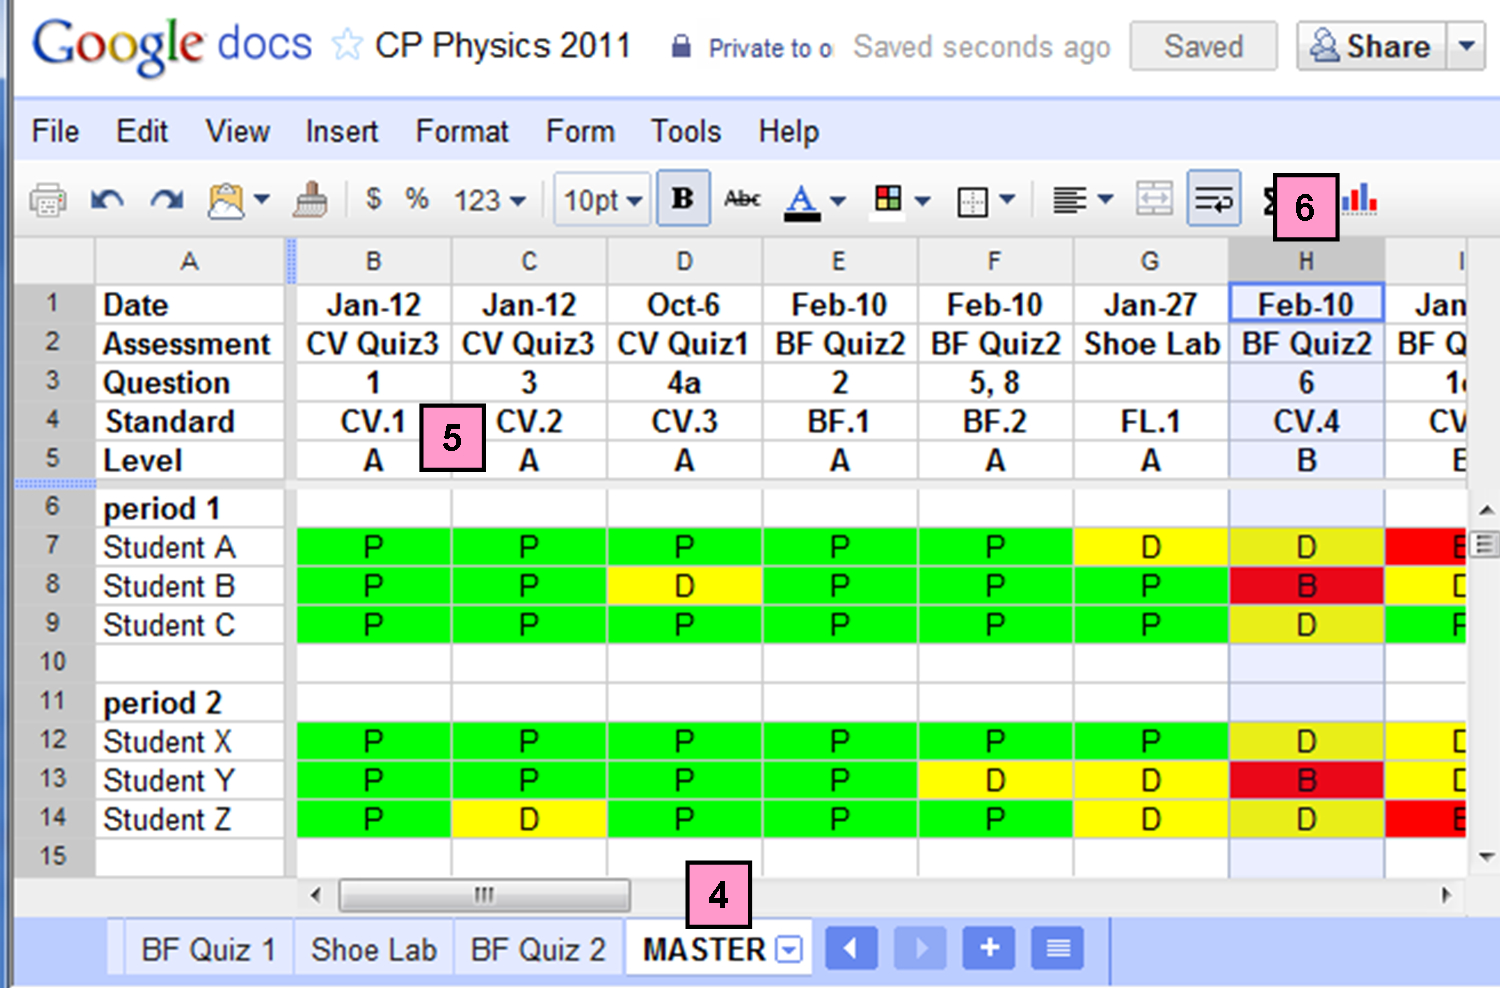 Excel Spreadsheet To Track Student Progress Intended For Sbg: Keeping Track Of It All  Actionreaction